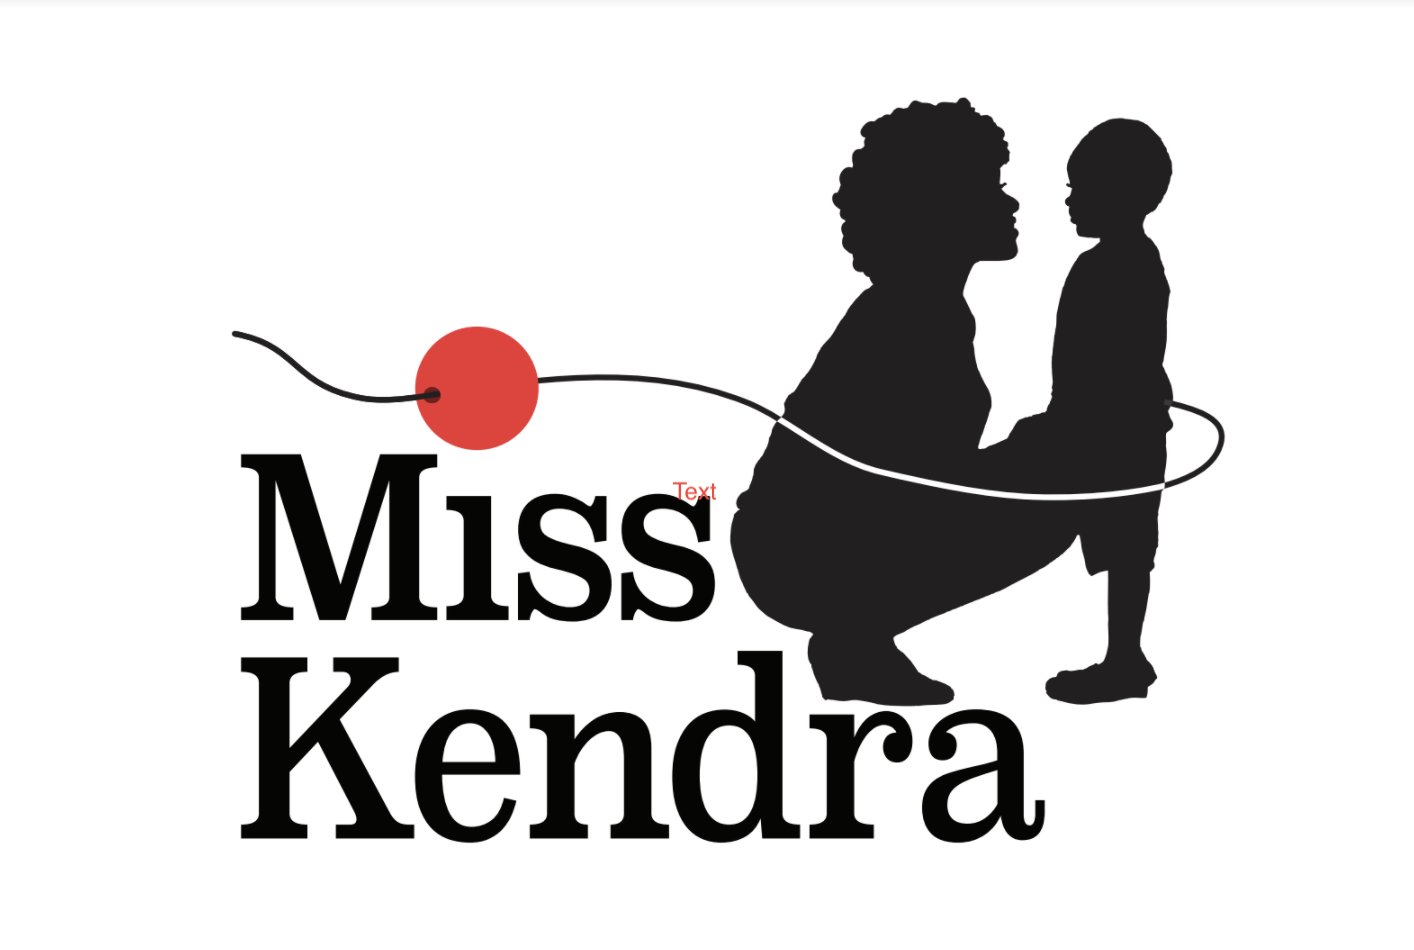 Miss Kendra's vision